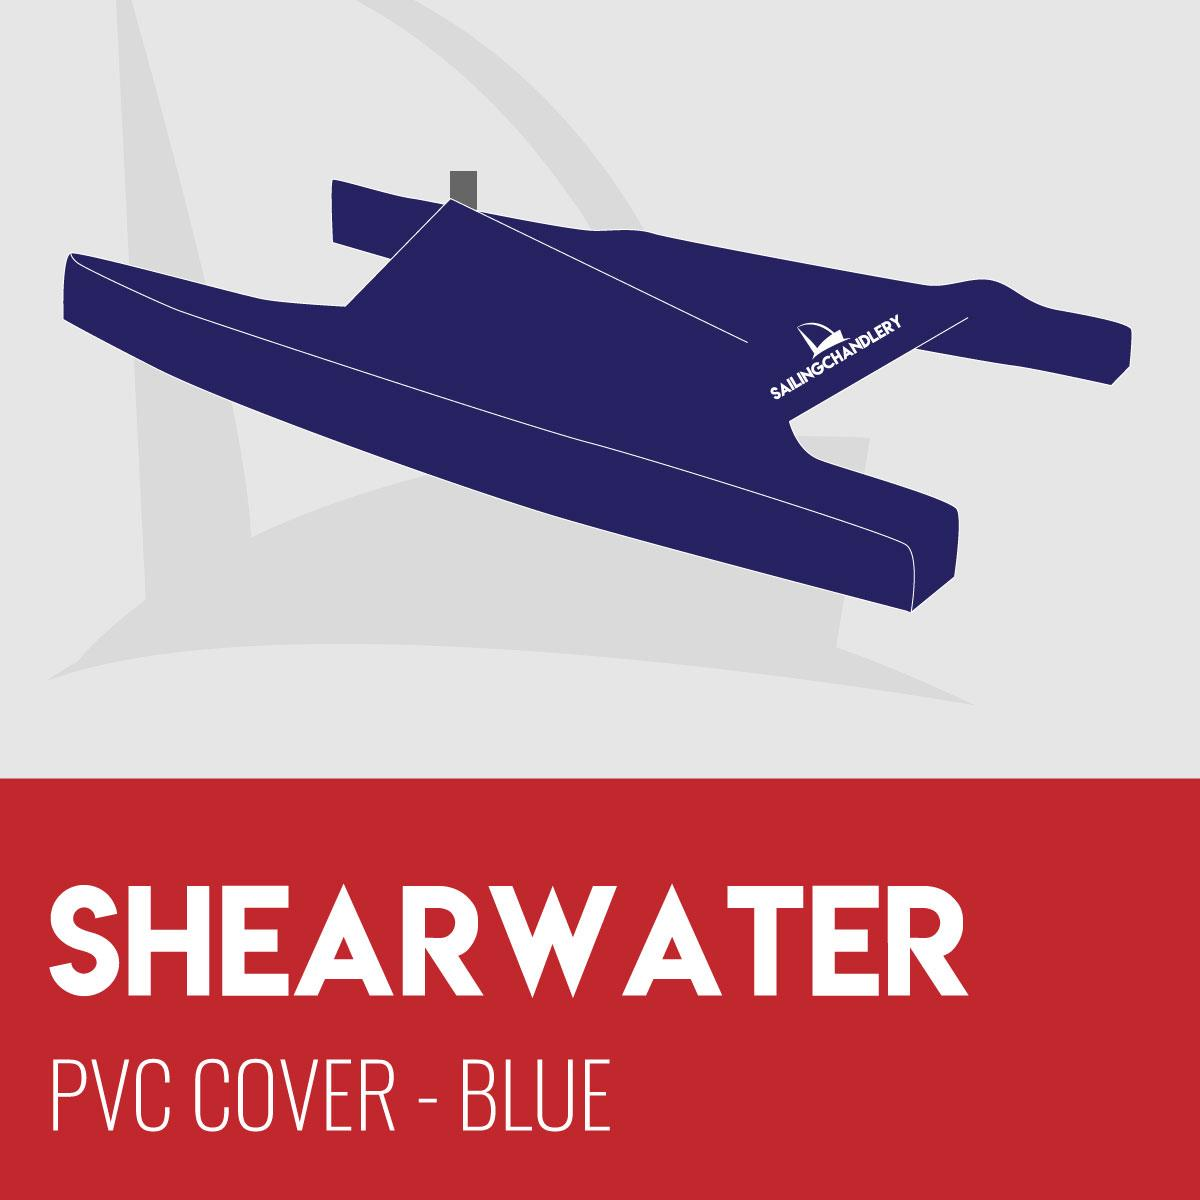 Shearwater Boat Cover - PVC